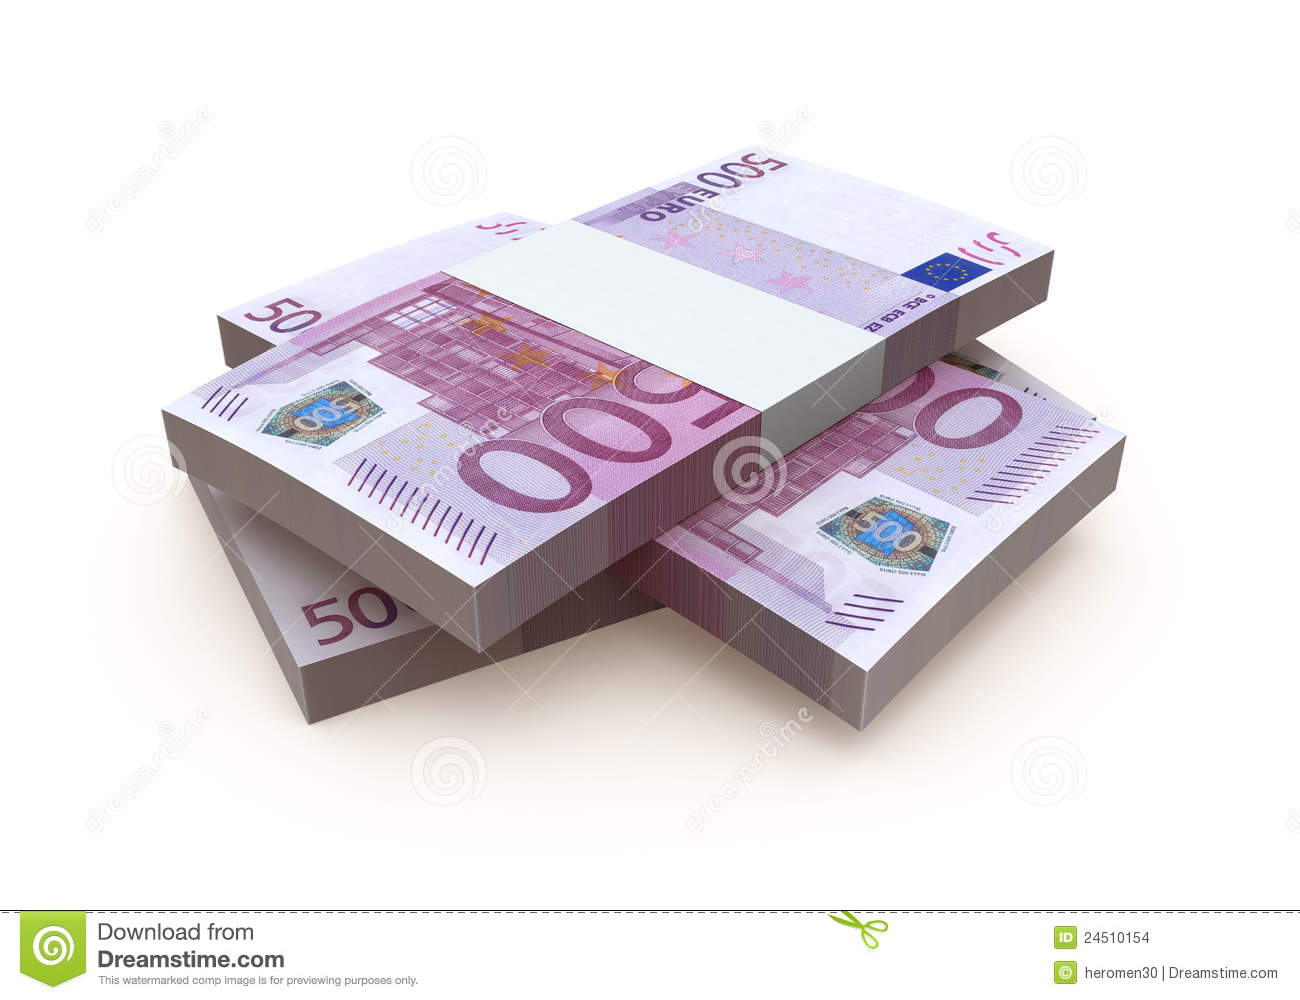 Euro 500 banknote stock illustration. Illustration of symbol.